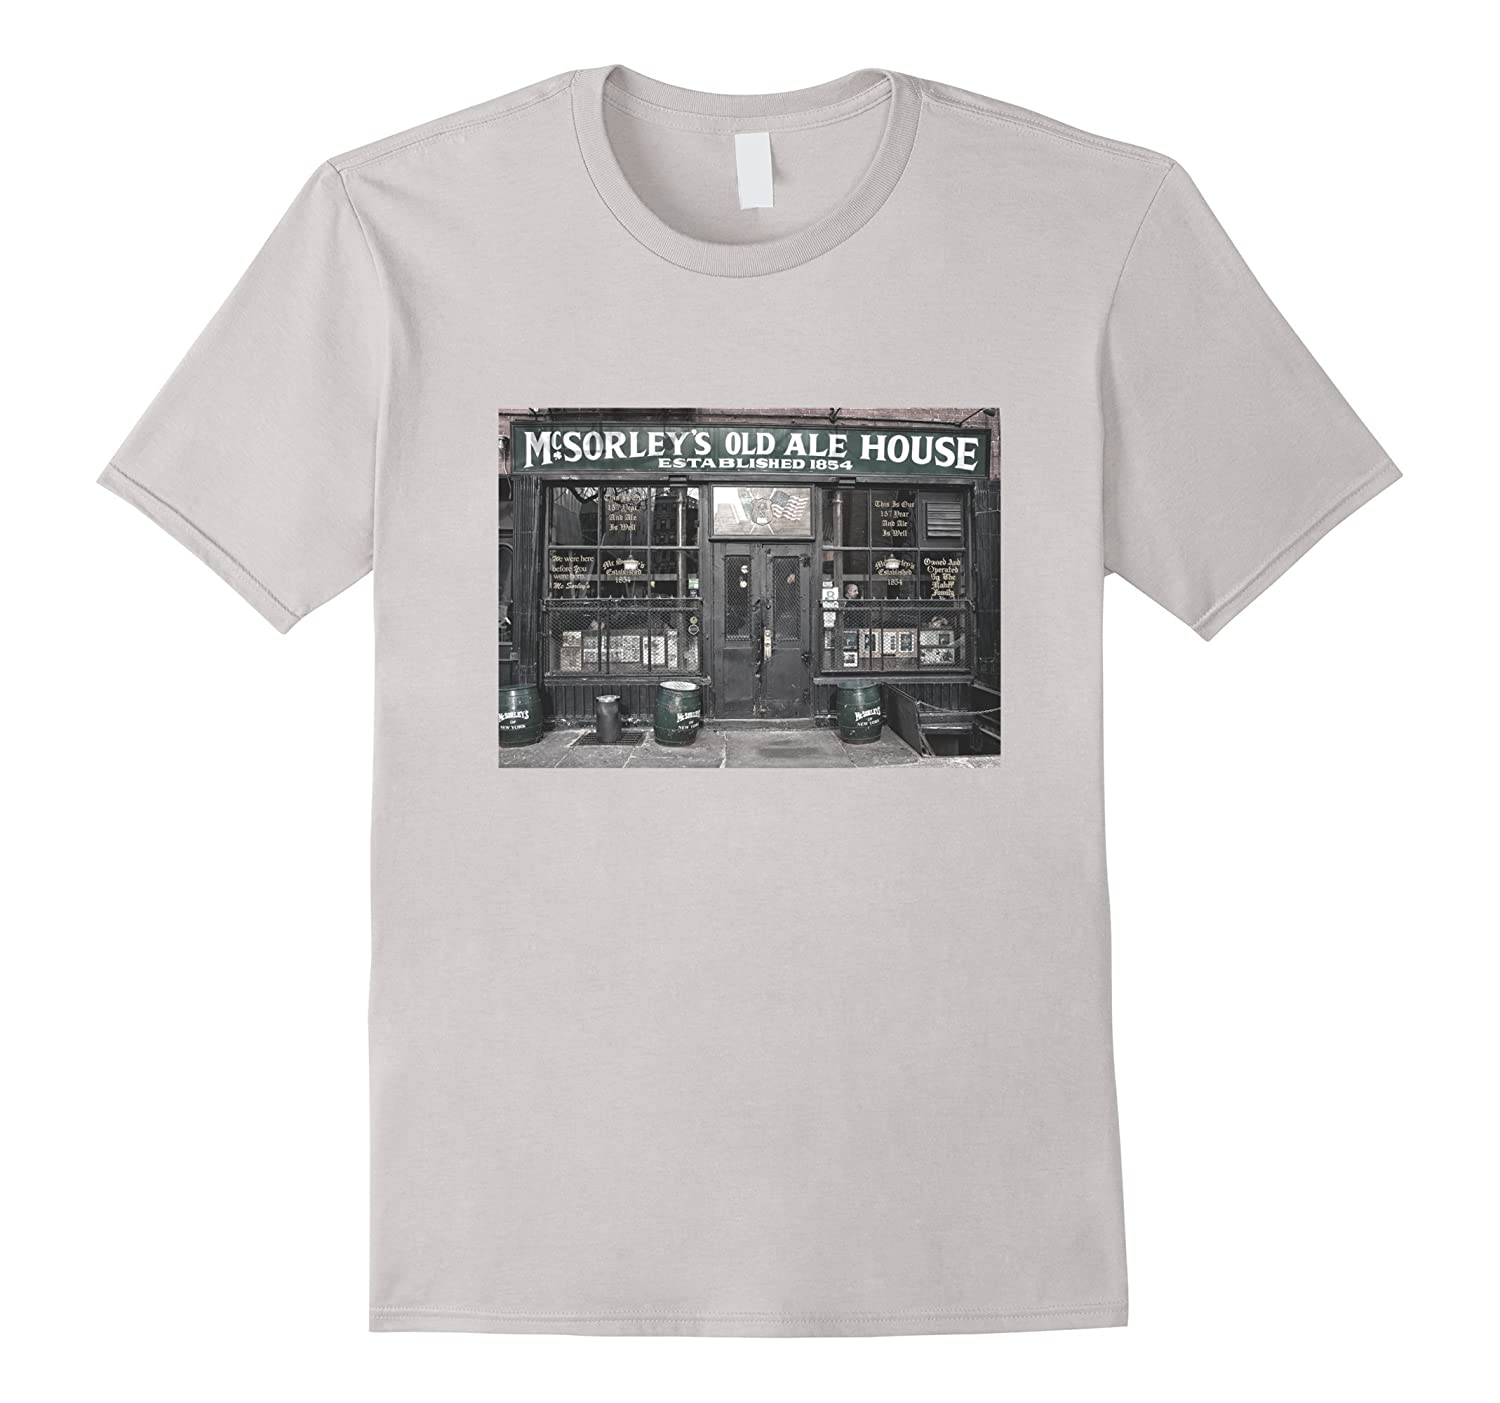 McSorleys Old Ale House Souvenir Vintage T-Shirt-FL